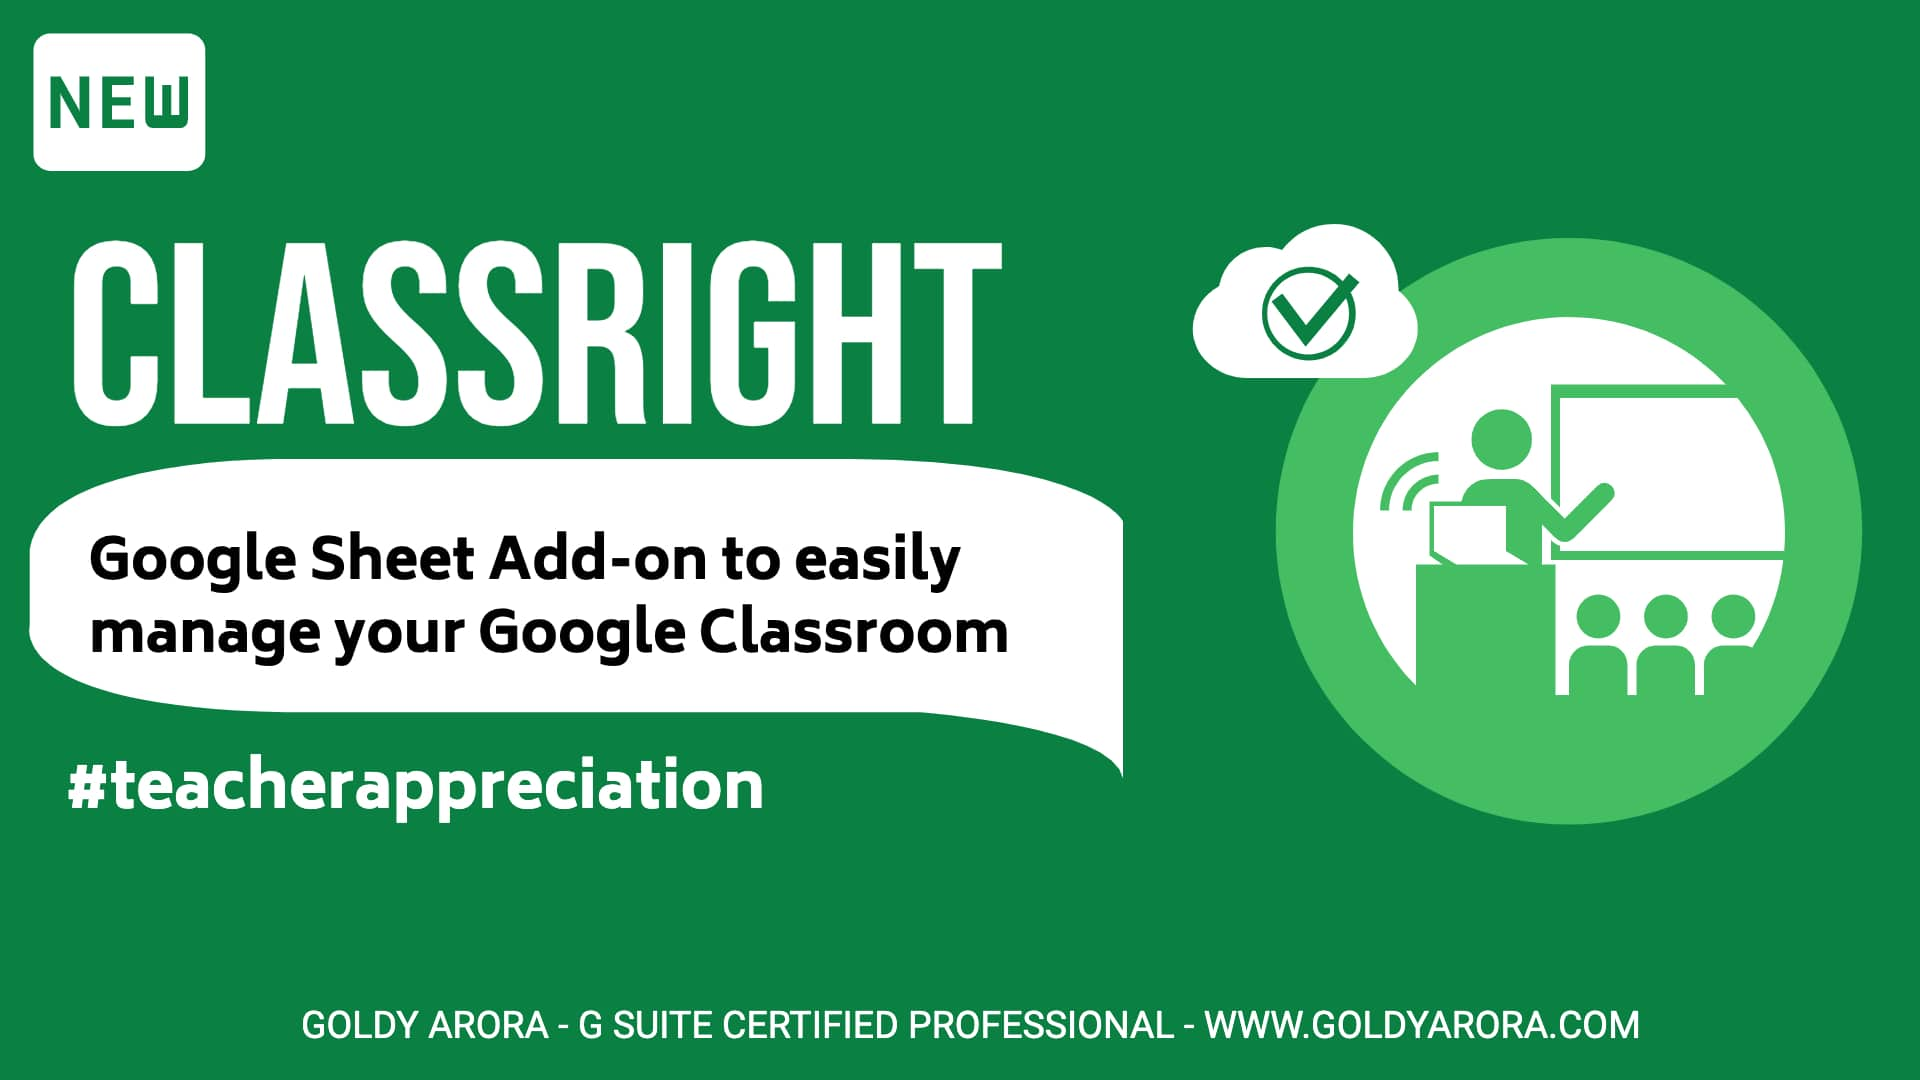 Classright - A Google Sheet Add-on to easily manage Google Classroom